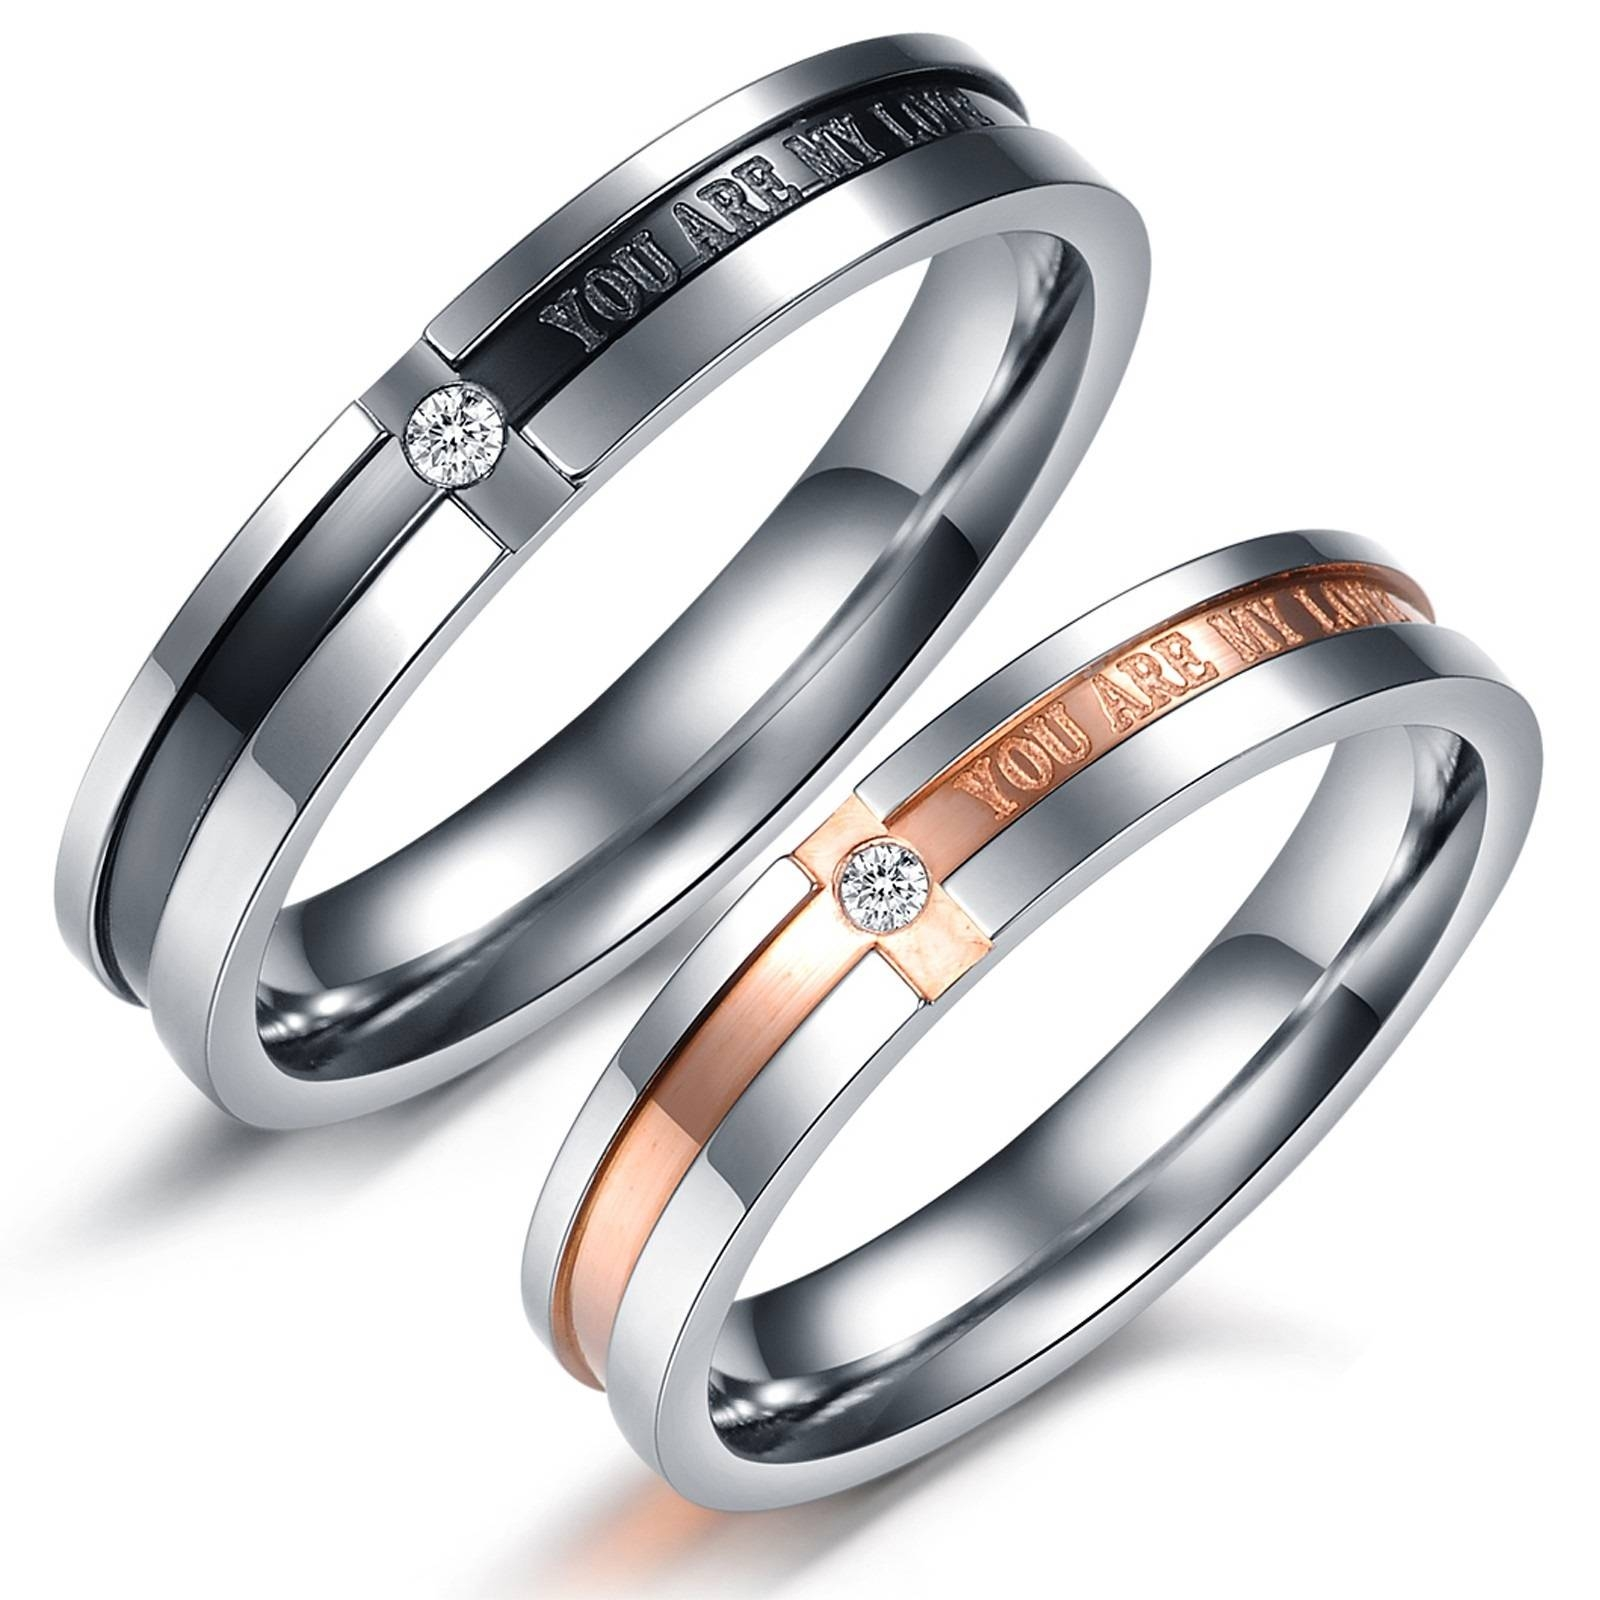 Matching Couple Titanium Steel Engagement Promise Ring Wedding With Regard To Wedding Bands To Match Solitaire Engagement Ring (Gallery 15 of 15)